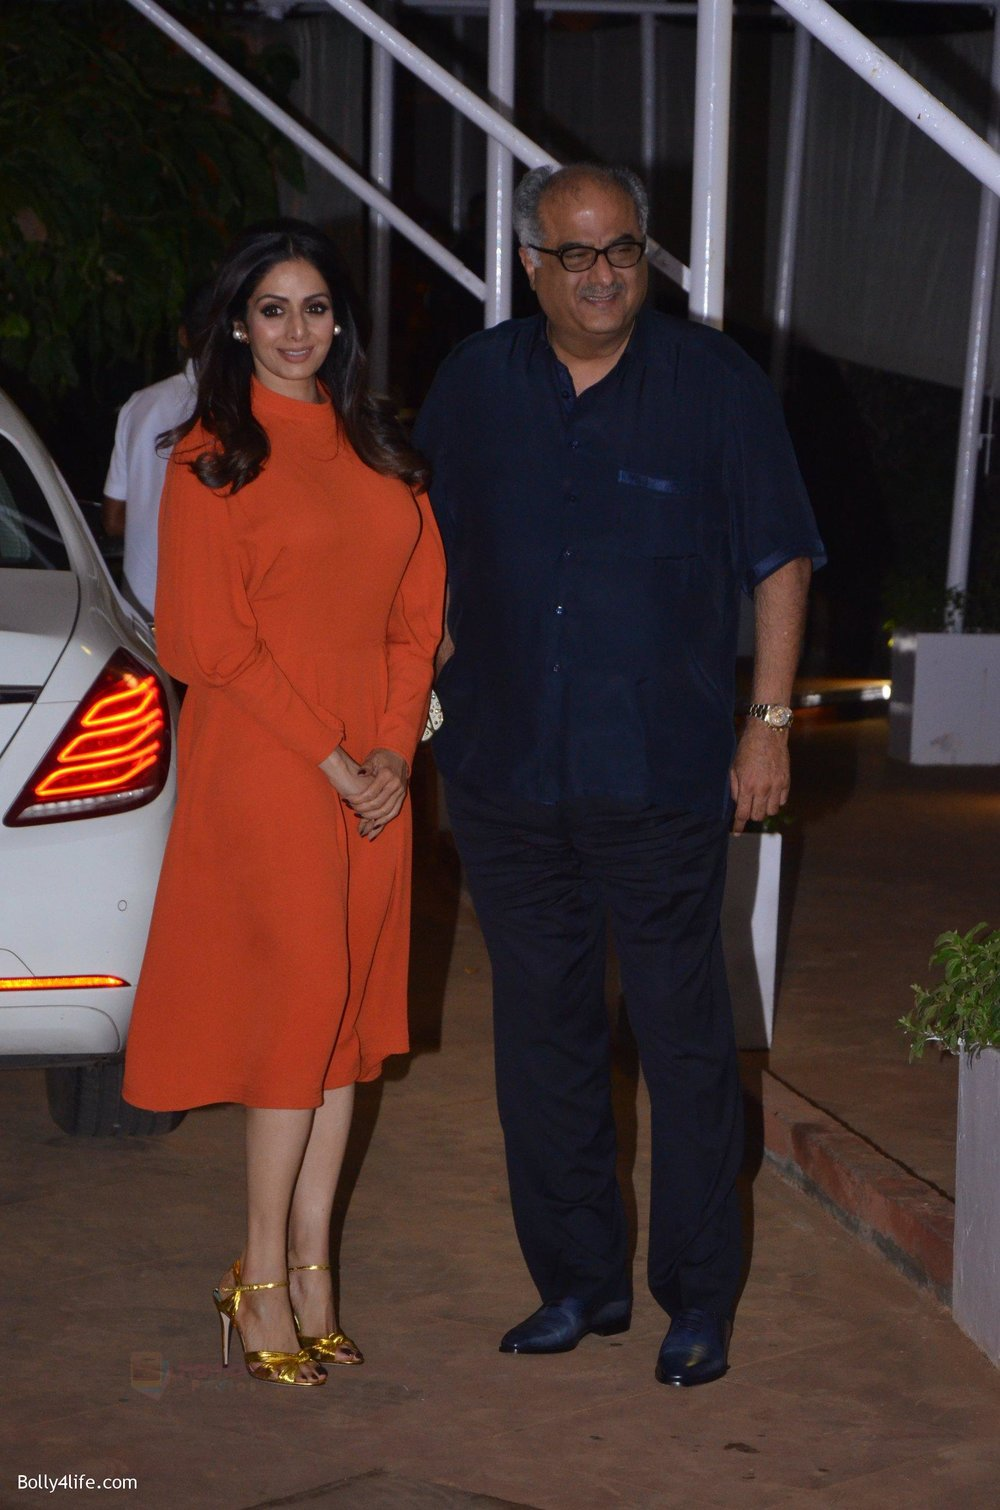 Boney-Kapoor-Sridevi-at-Reema-jain-bday-party-in-Amadeus-NCPA-on-28th-Sept-2016-1041.jpg